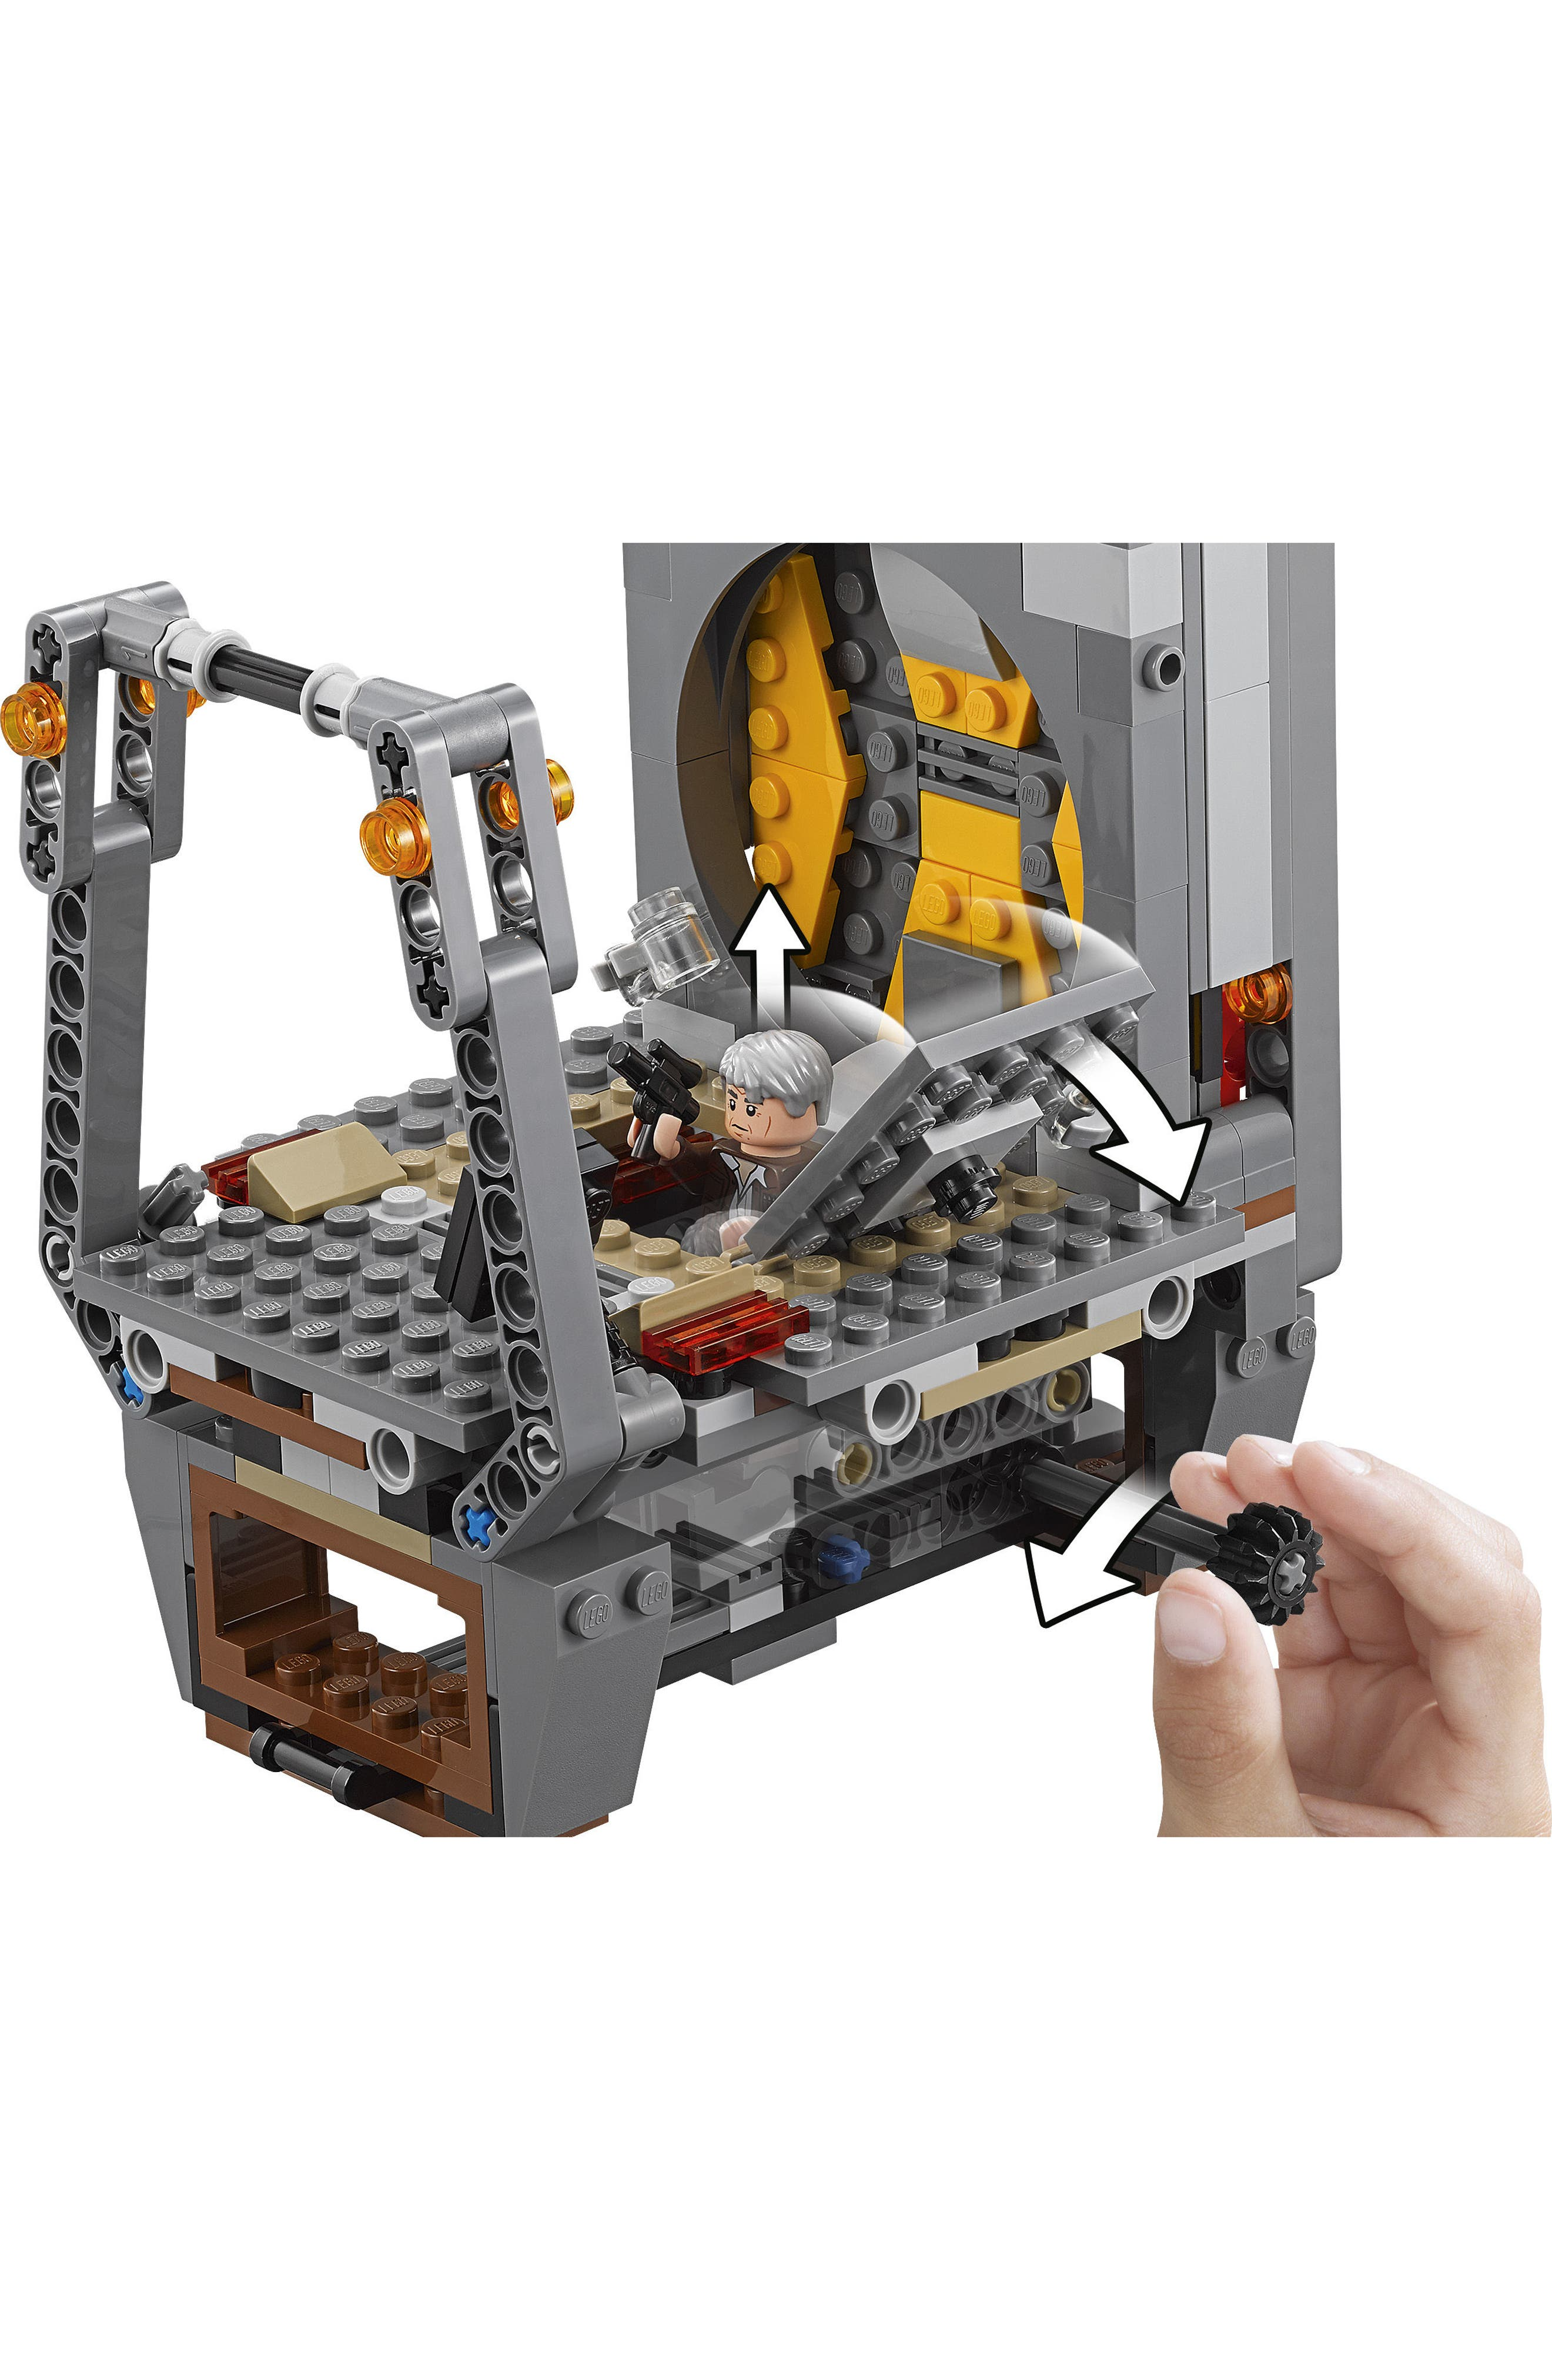 Star Wars<sup>™</sup>: The Force Awakens Rathtar<sup>™</sup> Escape Play Set - 75180,                             Alternate thumbnail 2, color,                             Multi